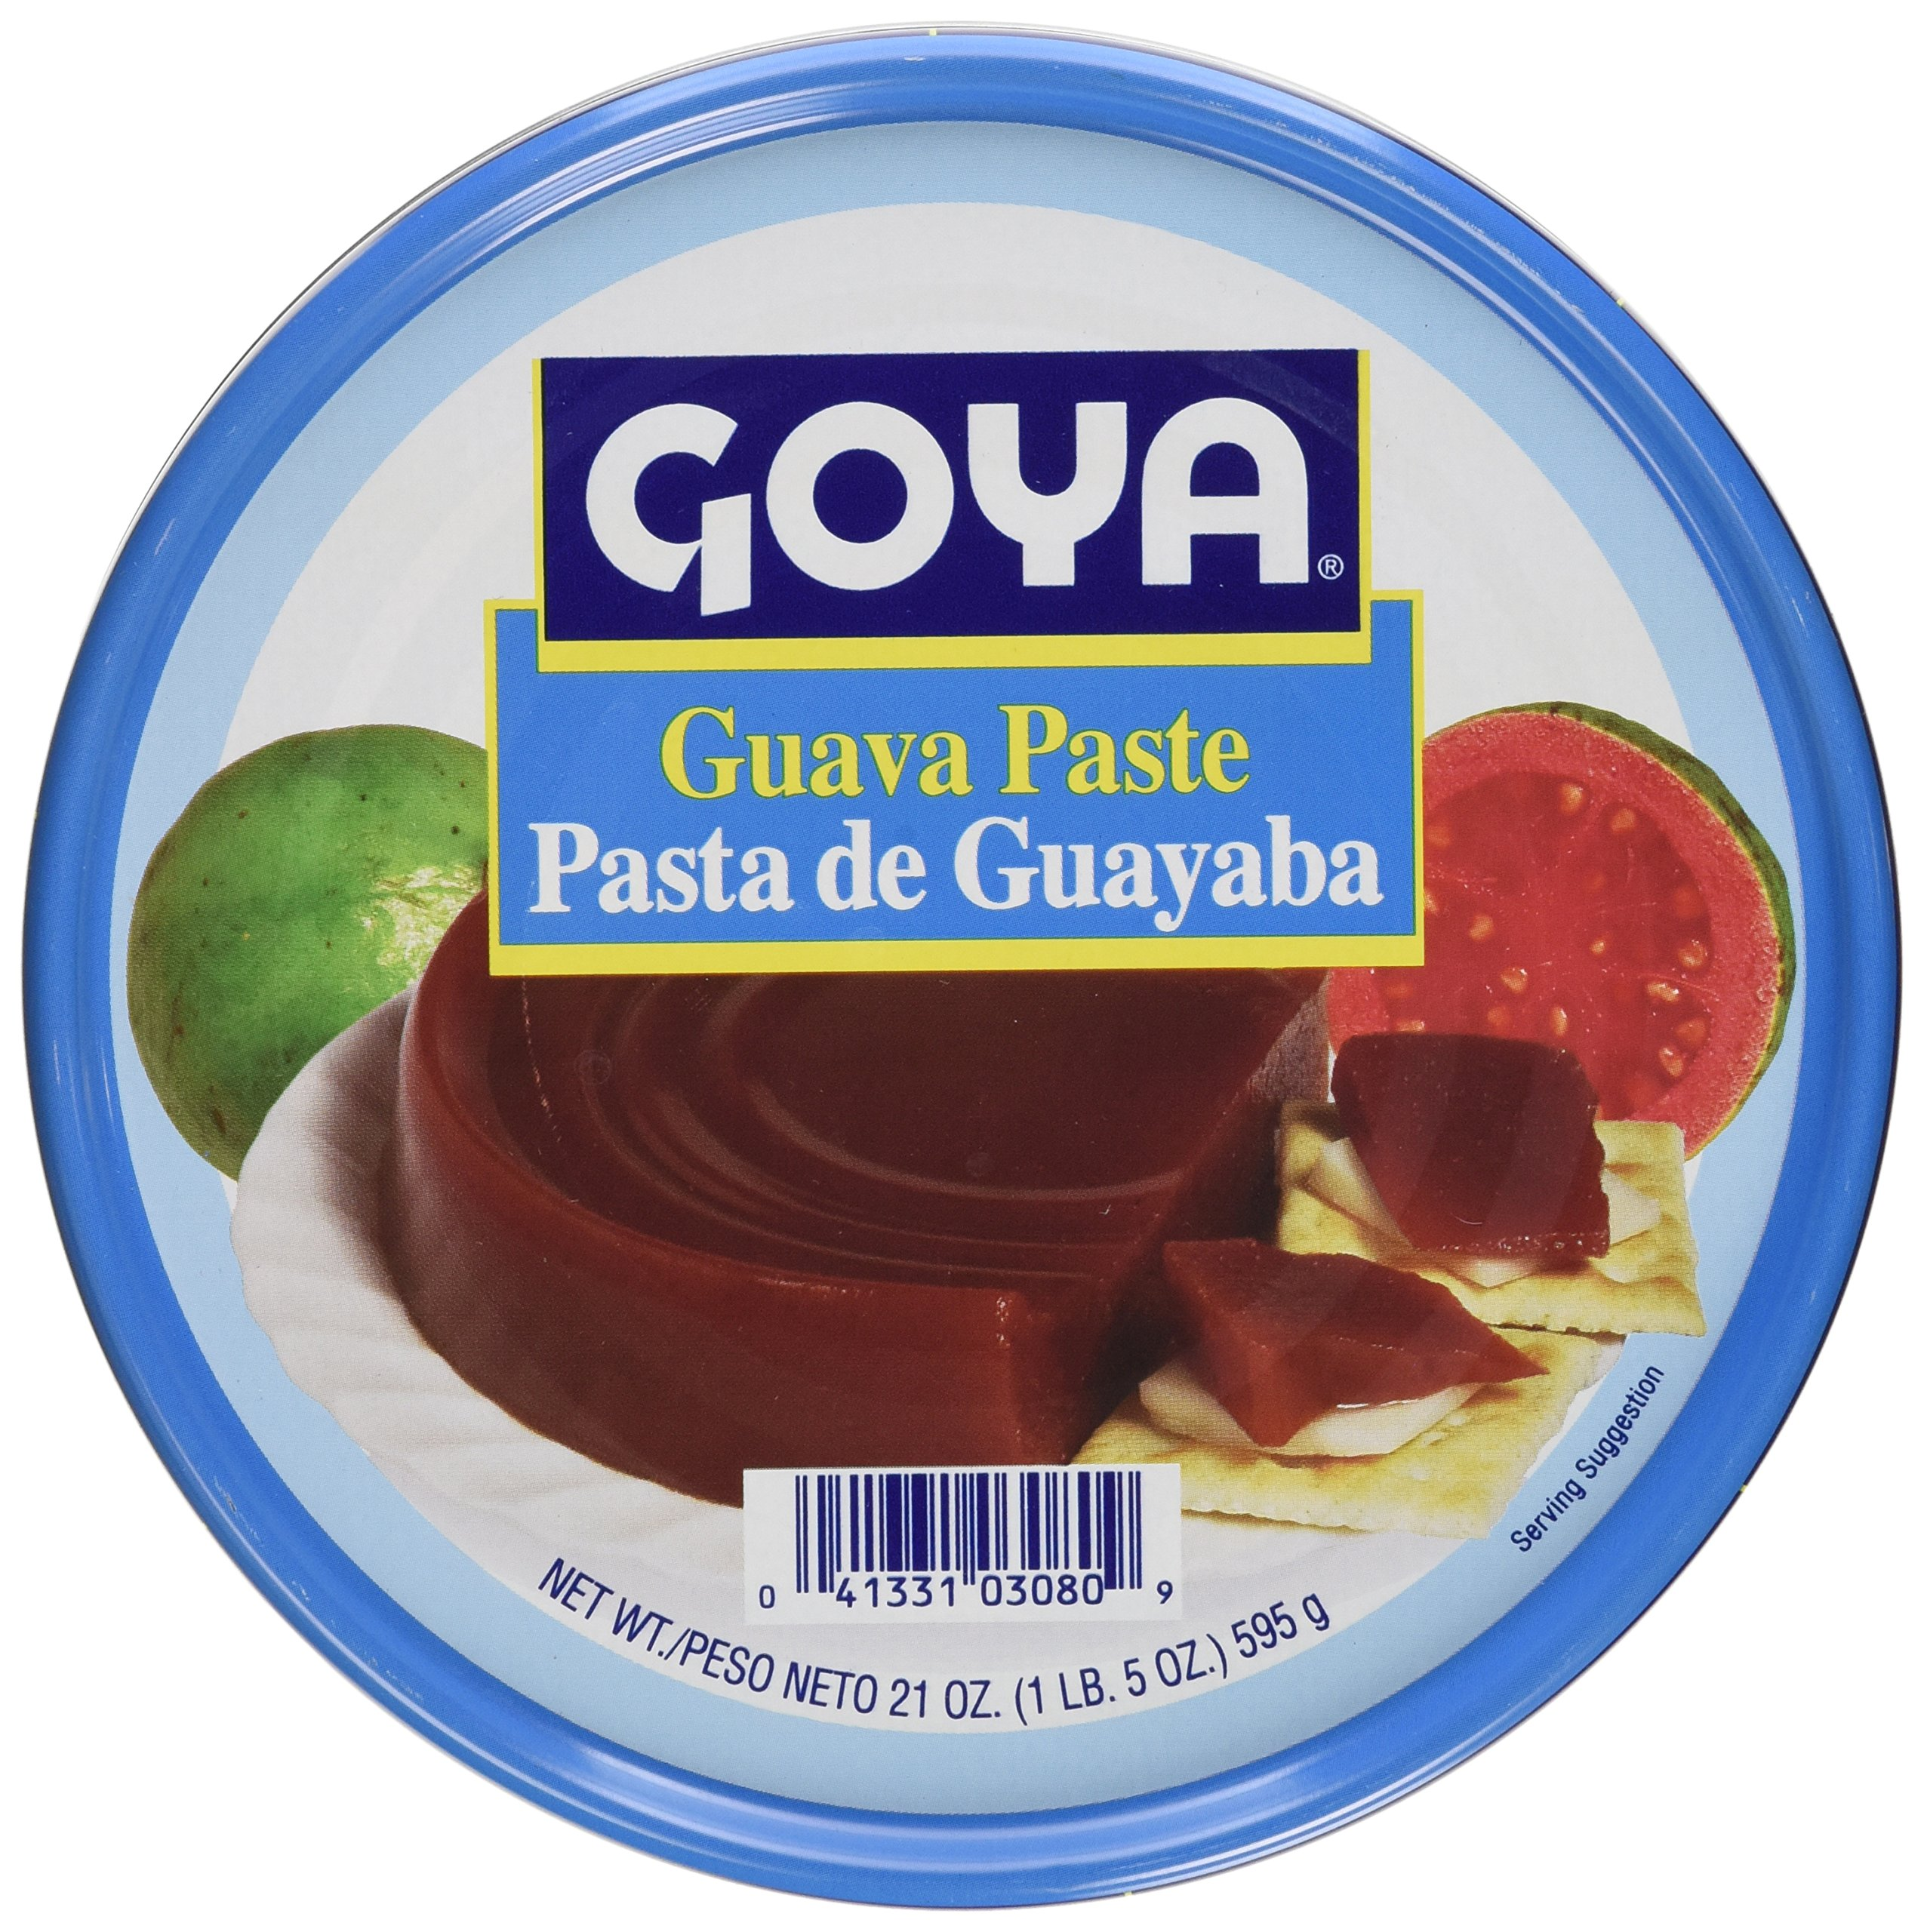 Goya Guava Paste 21 Ounce Can Pasta de Guayaba (2 Pack) by Goya